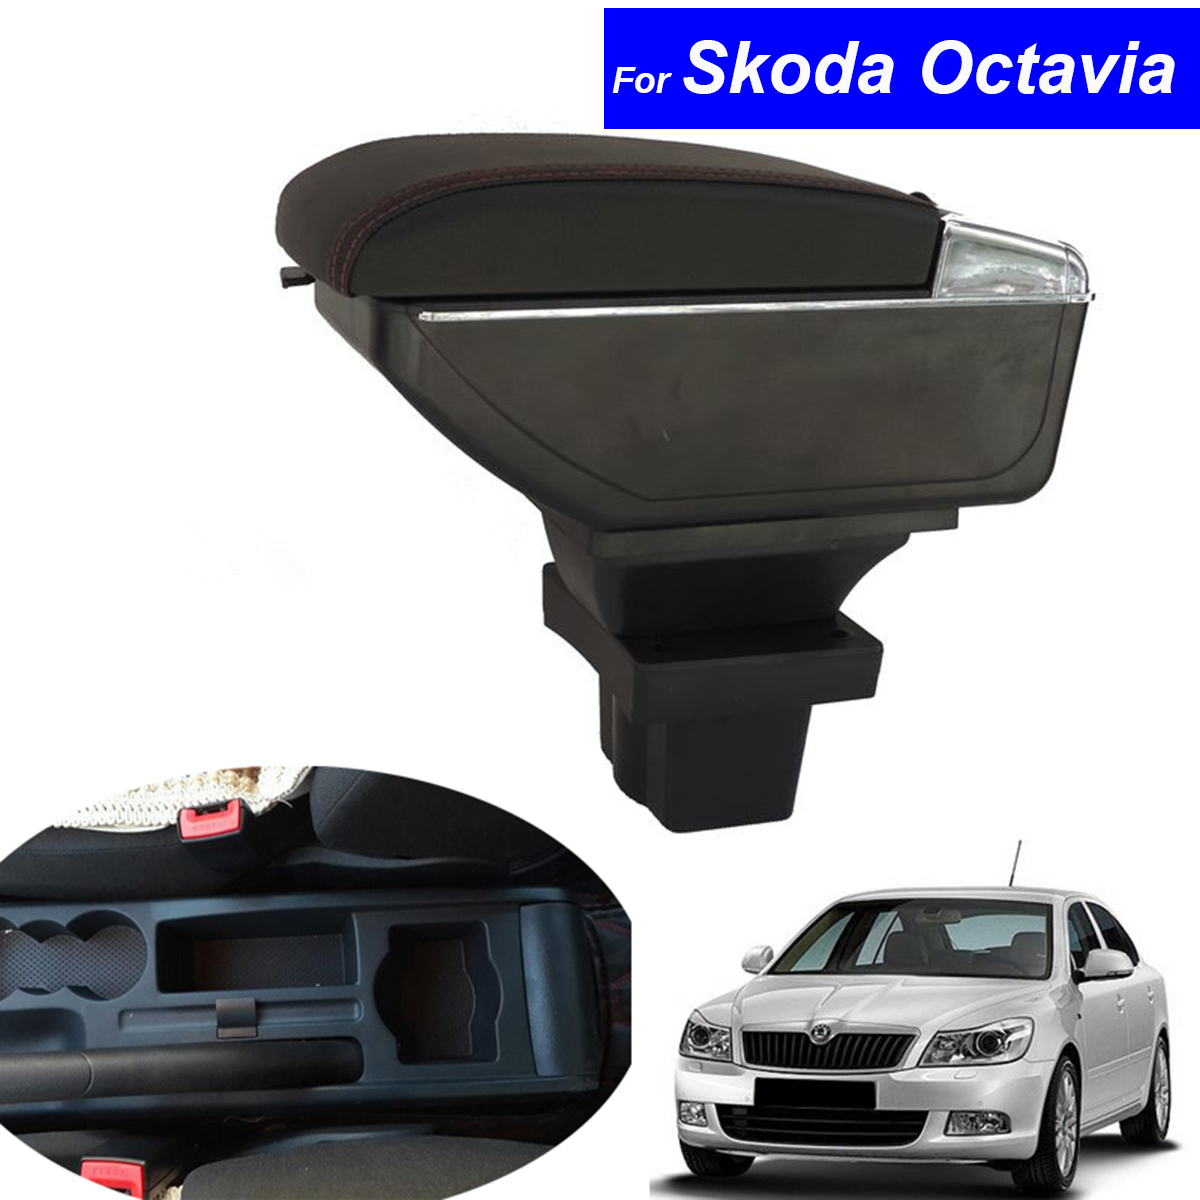 Leather Car Center Console Armrests Storage Box for Skoda Octavia 2009 2010 2011 2012 2013 2014 2015 2016 Free Shipping free shipping 2012 2014 skoda fabia high quality console avoid light pad dashboard protection pad car styling